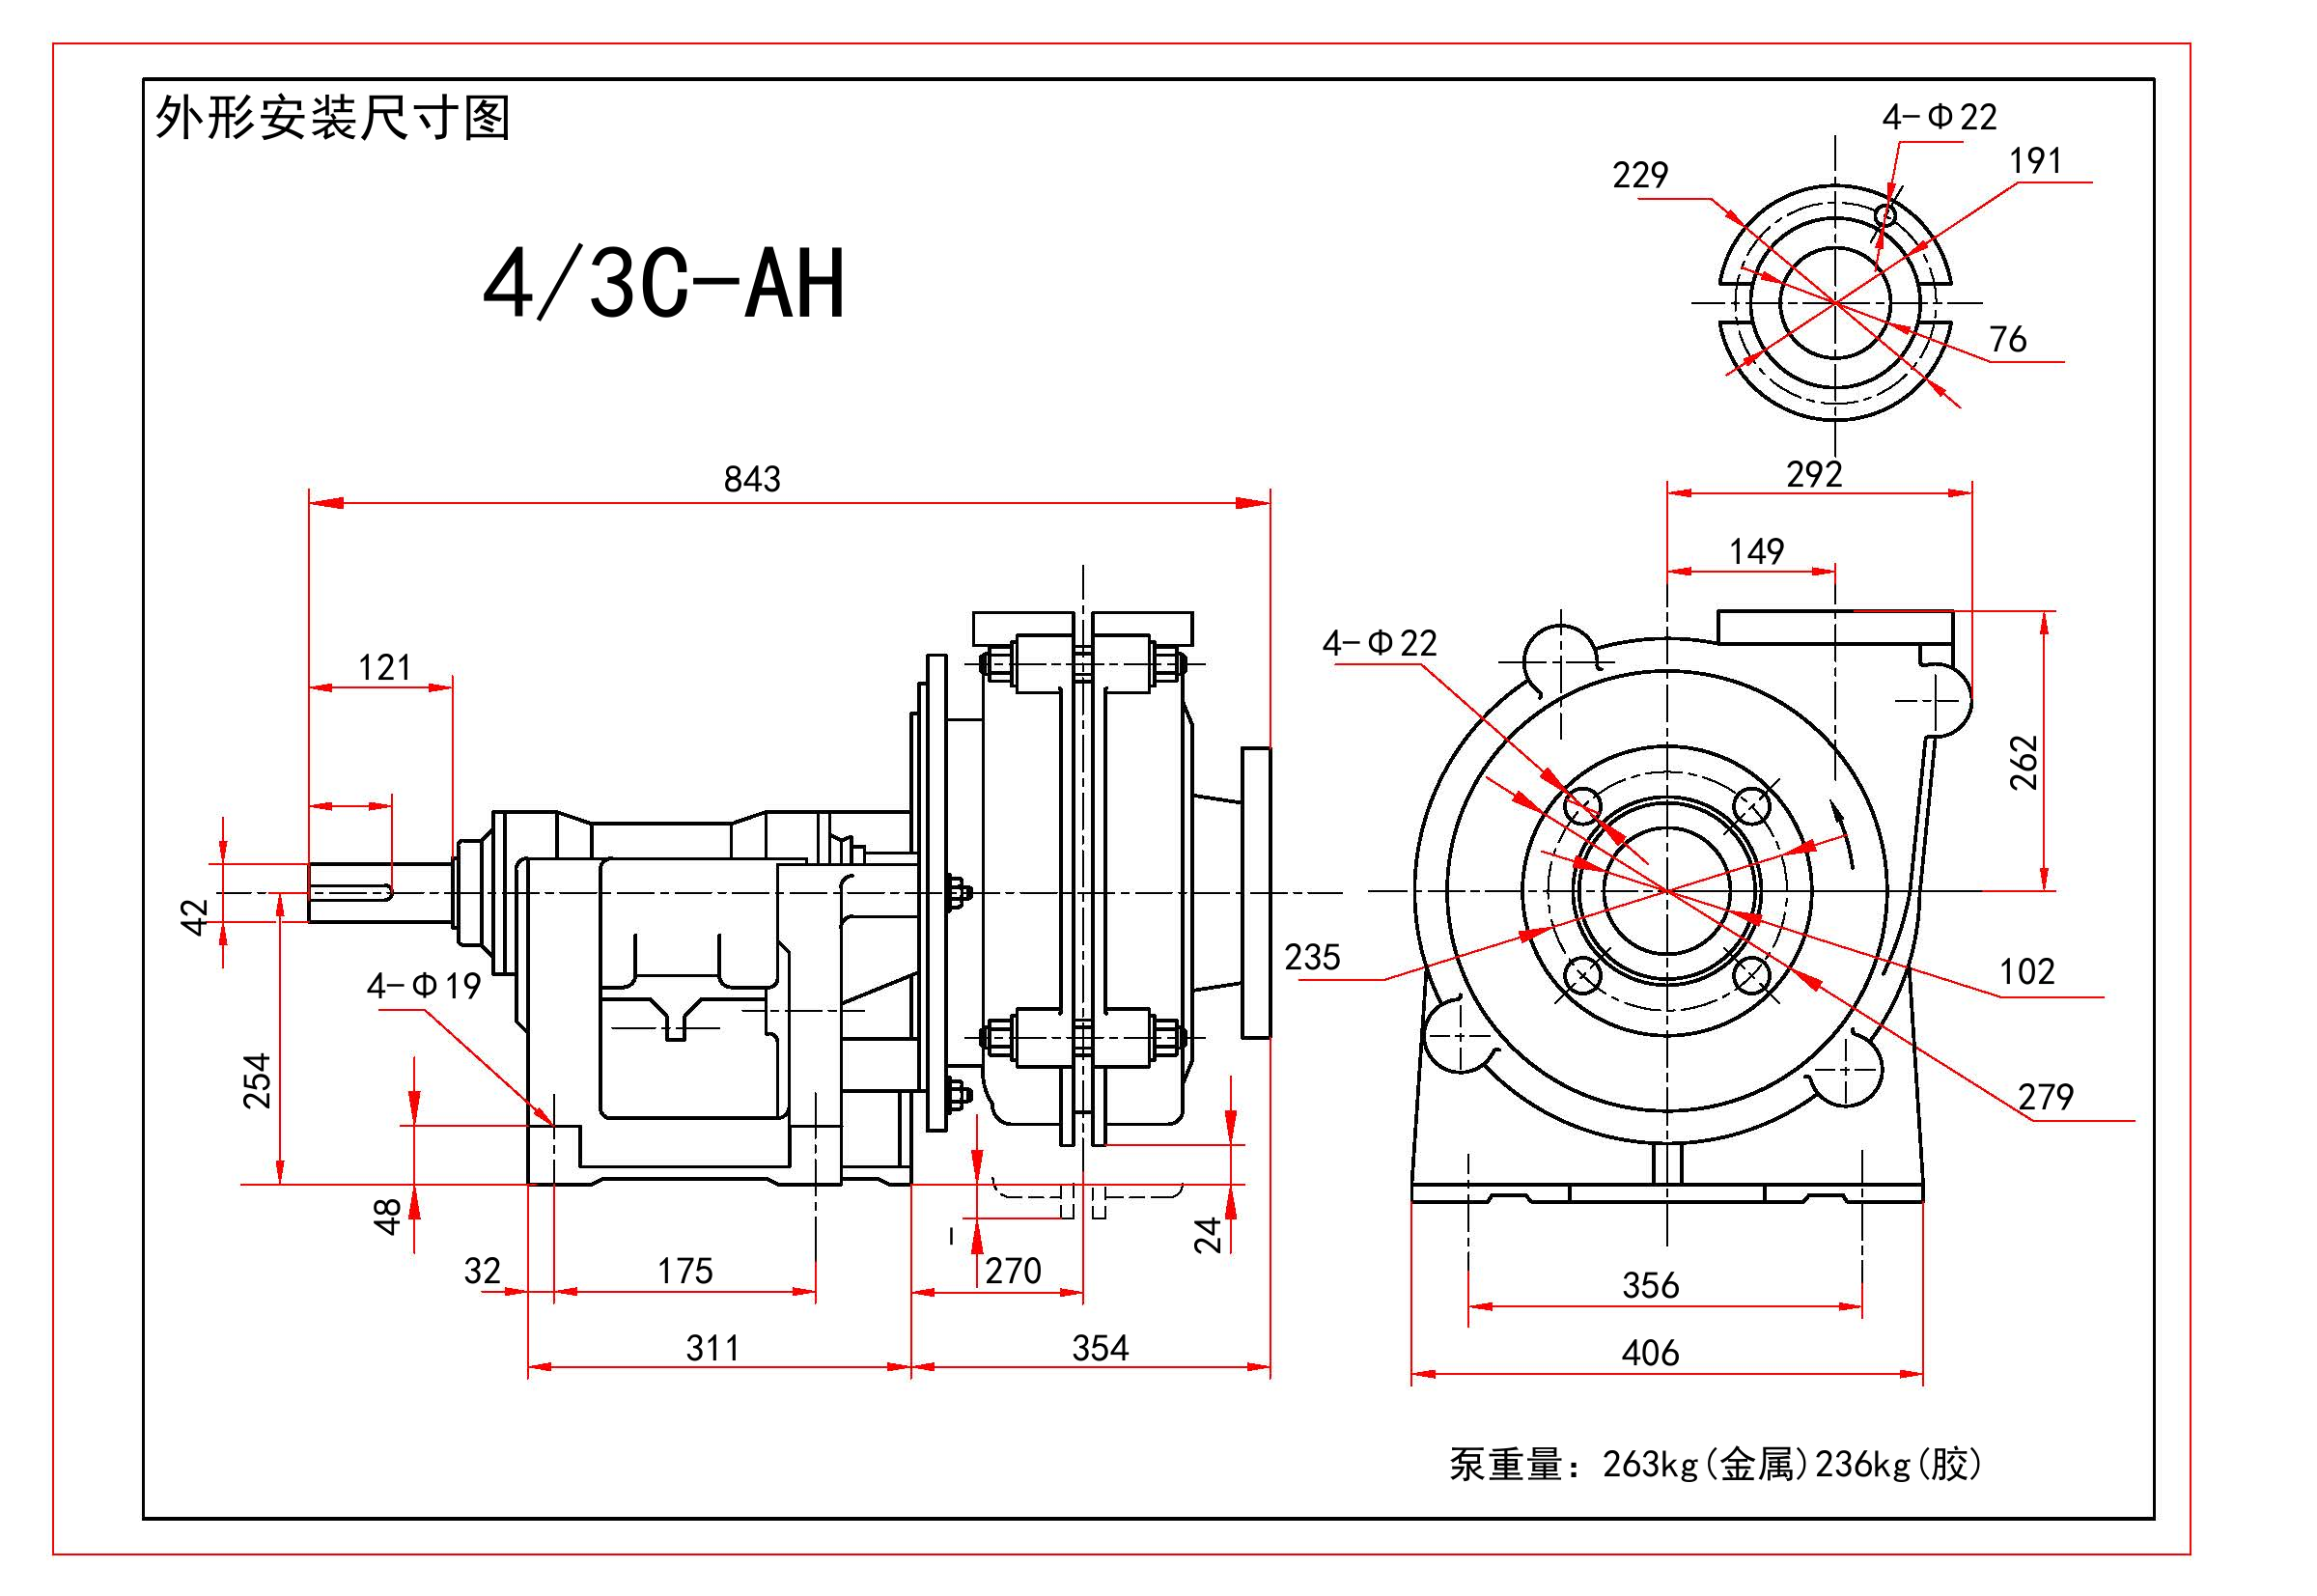 4/3C-AH slurry pump